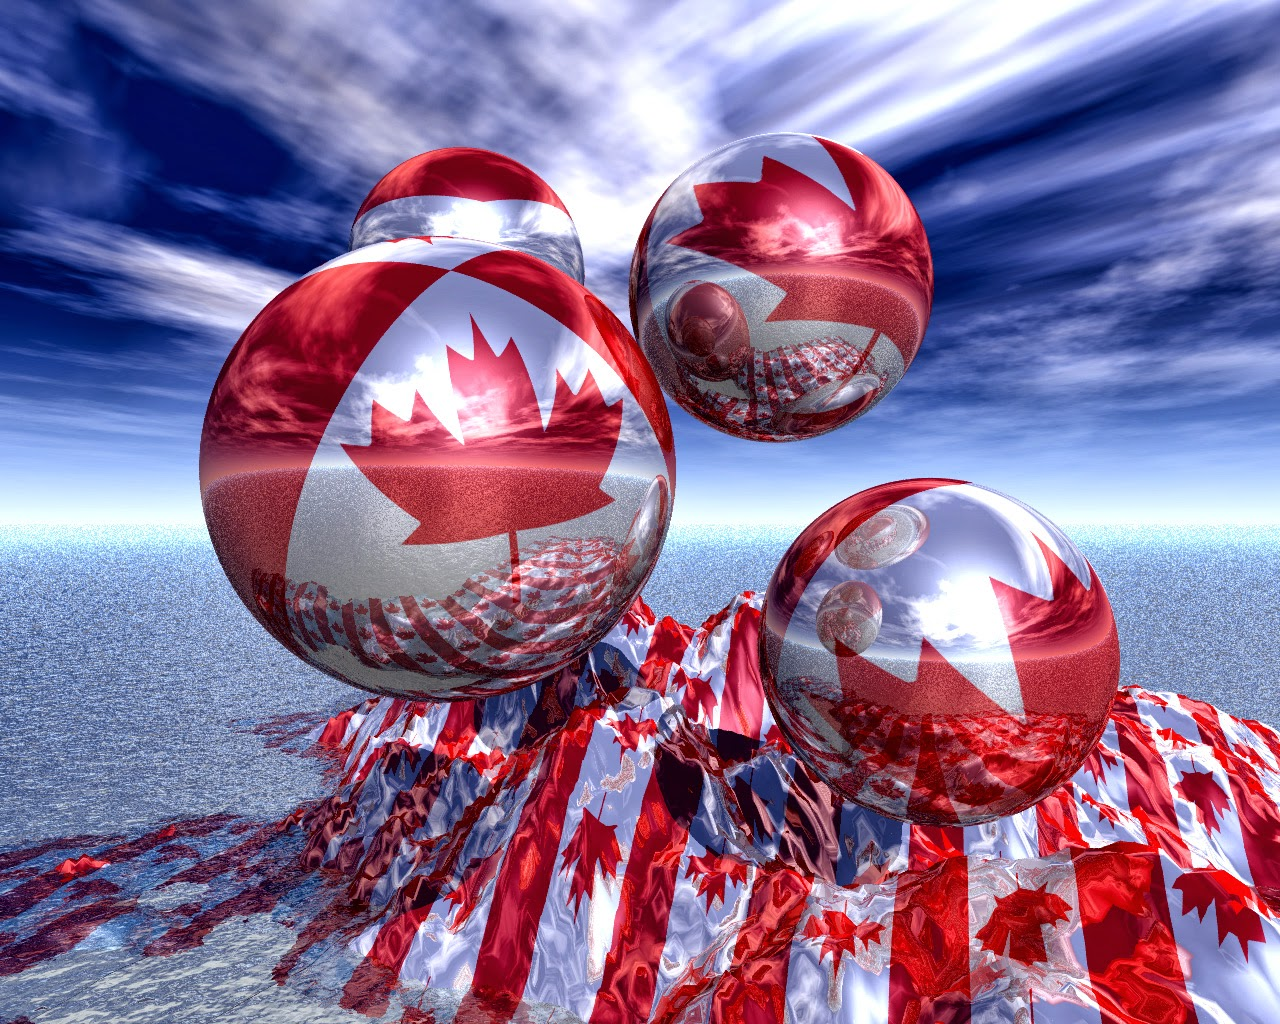 Cars Symbol Wallpaper Canadian Flag Wallpapers National Flag Of Canada Hd